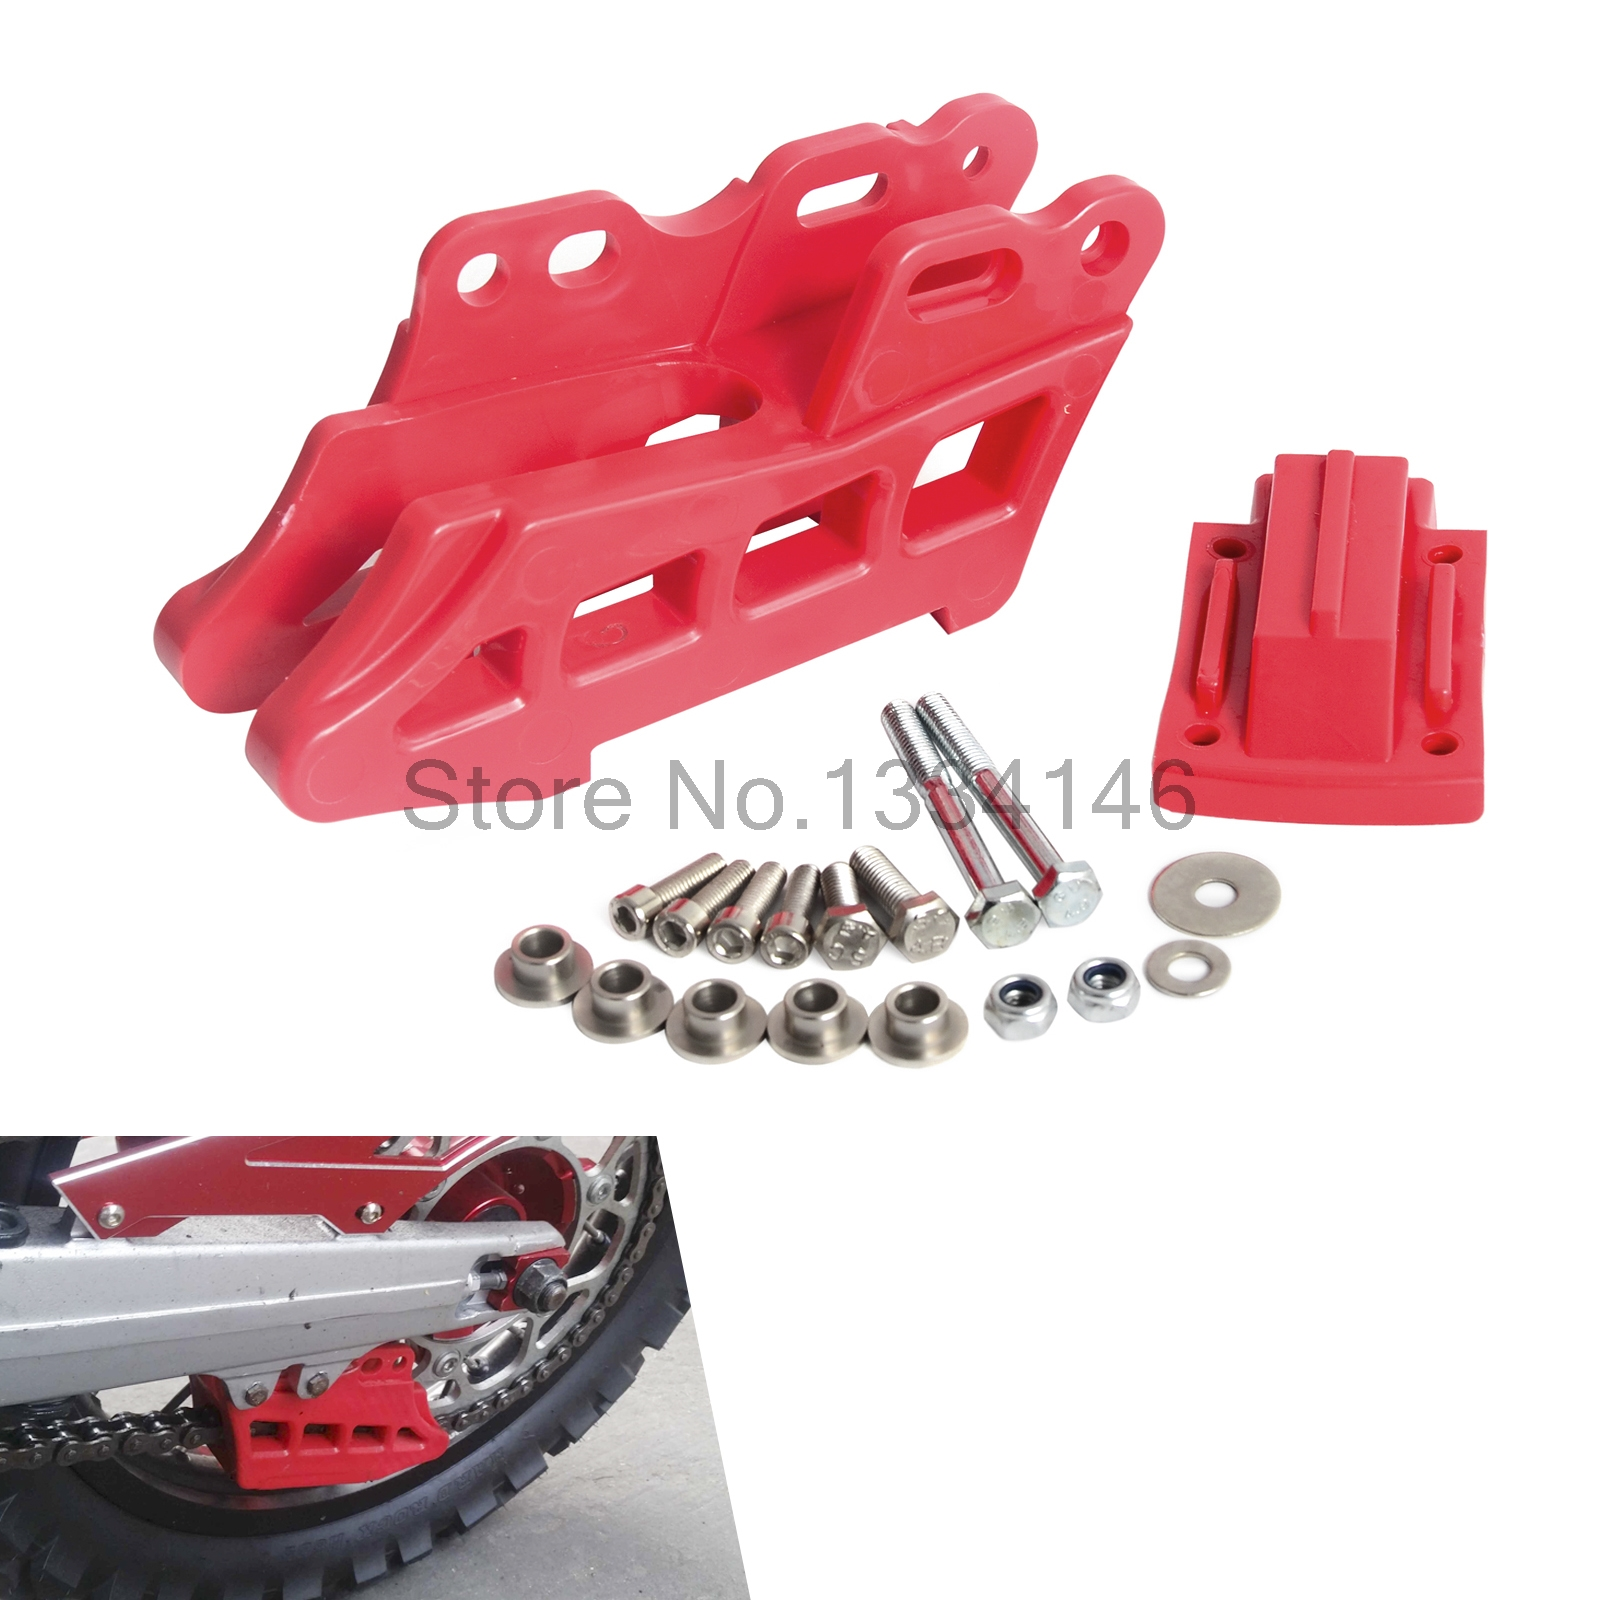 NICECNC Motorcycle Chain Guide Guard Protector For Honda CRF250L/M CRF250L CRF250M 2012-2015 XR250 XR 250 Baja Motard 1995-2007